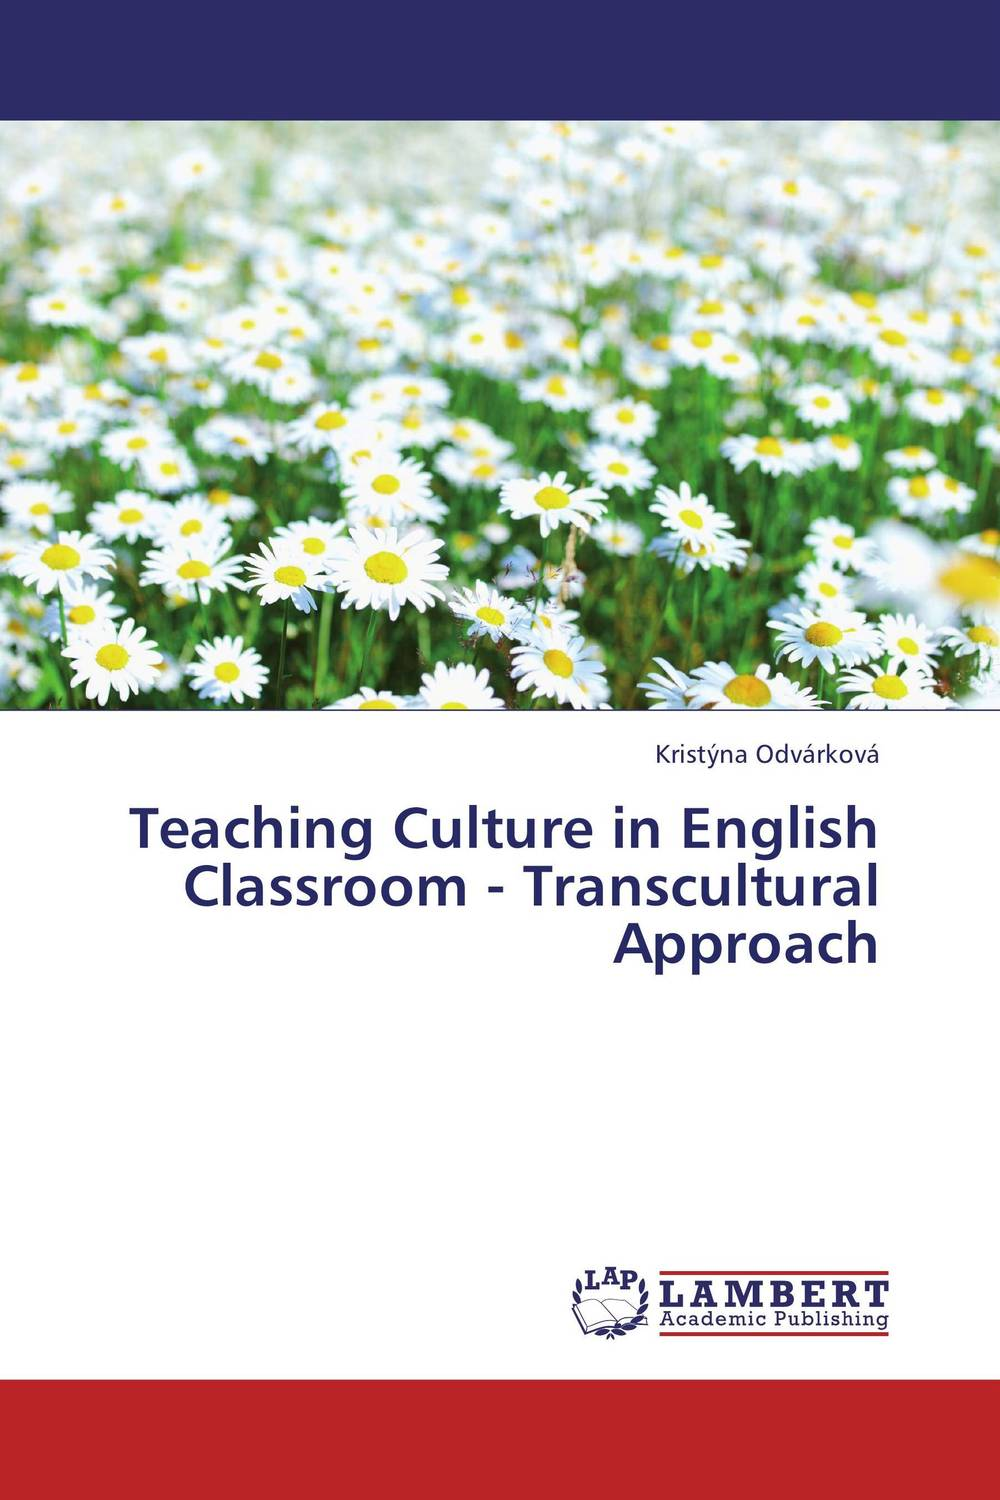 Teaching Culture in English Classroom - Transcultural Approach glynn s hughes handbook of classroom english